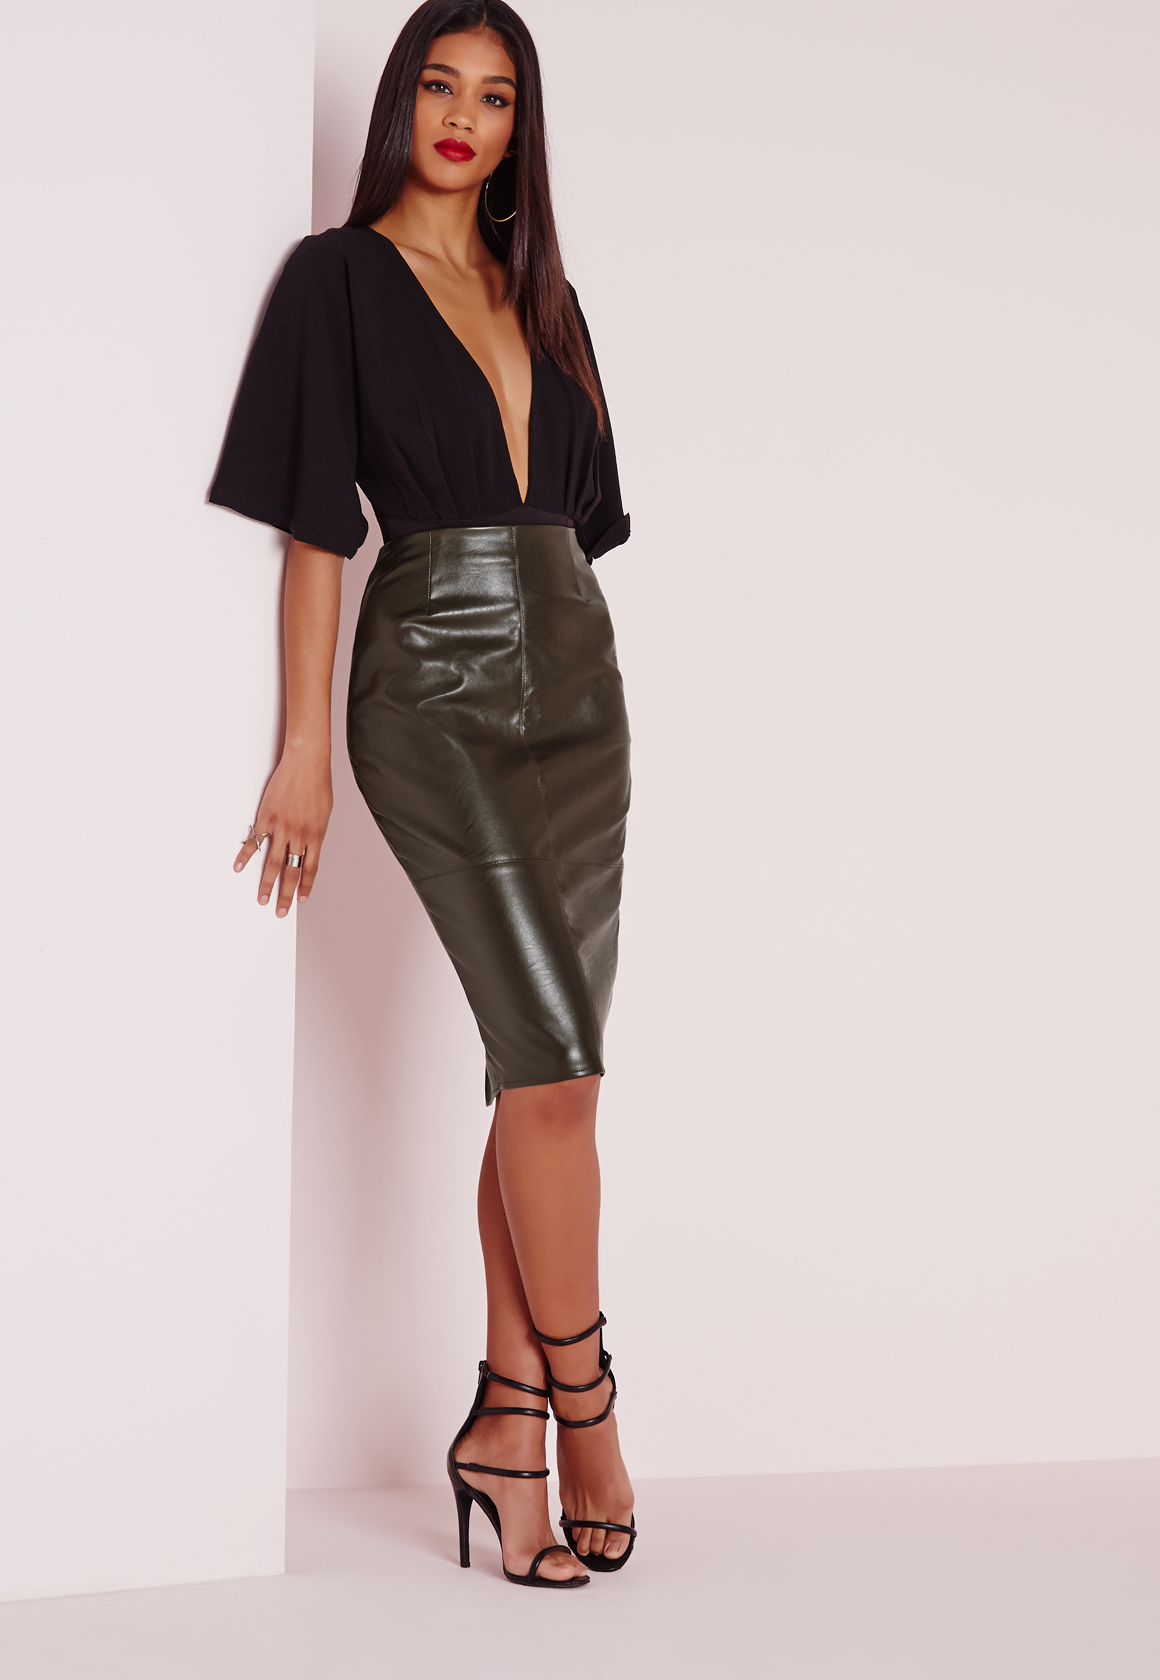 Lyst - Pepe Jeans Leather Look Mini Skirt in Black